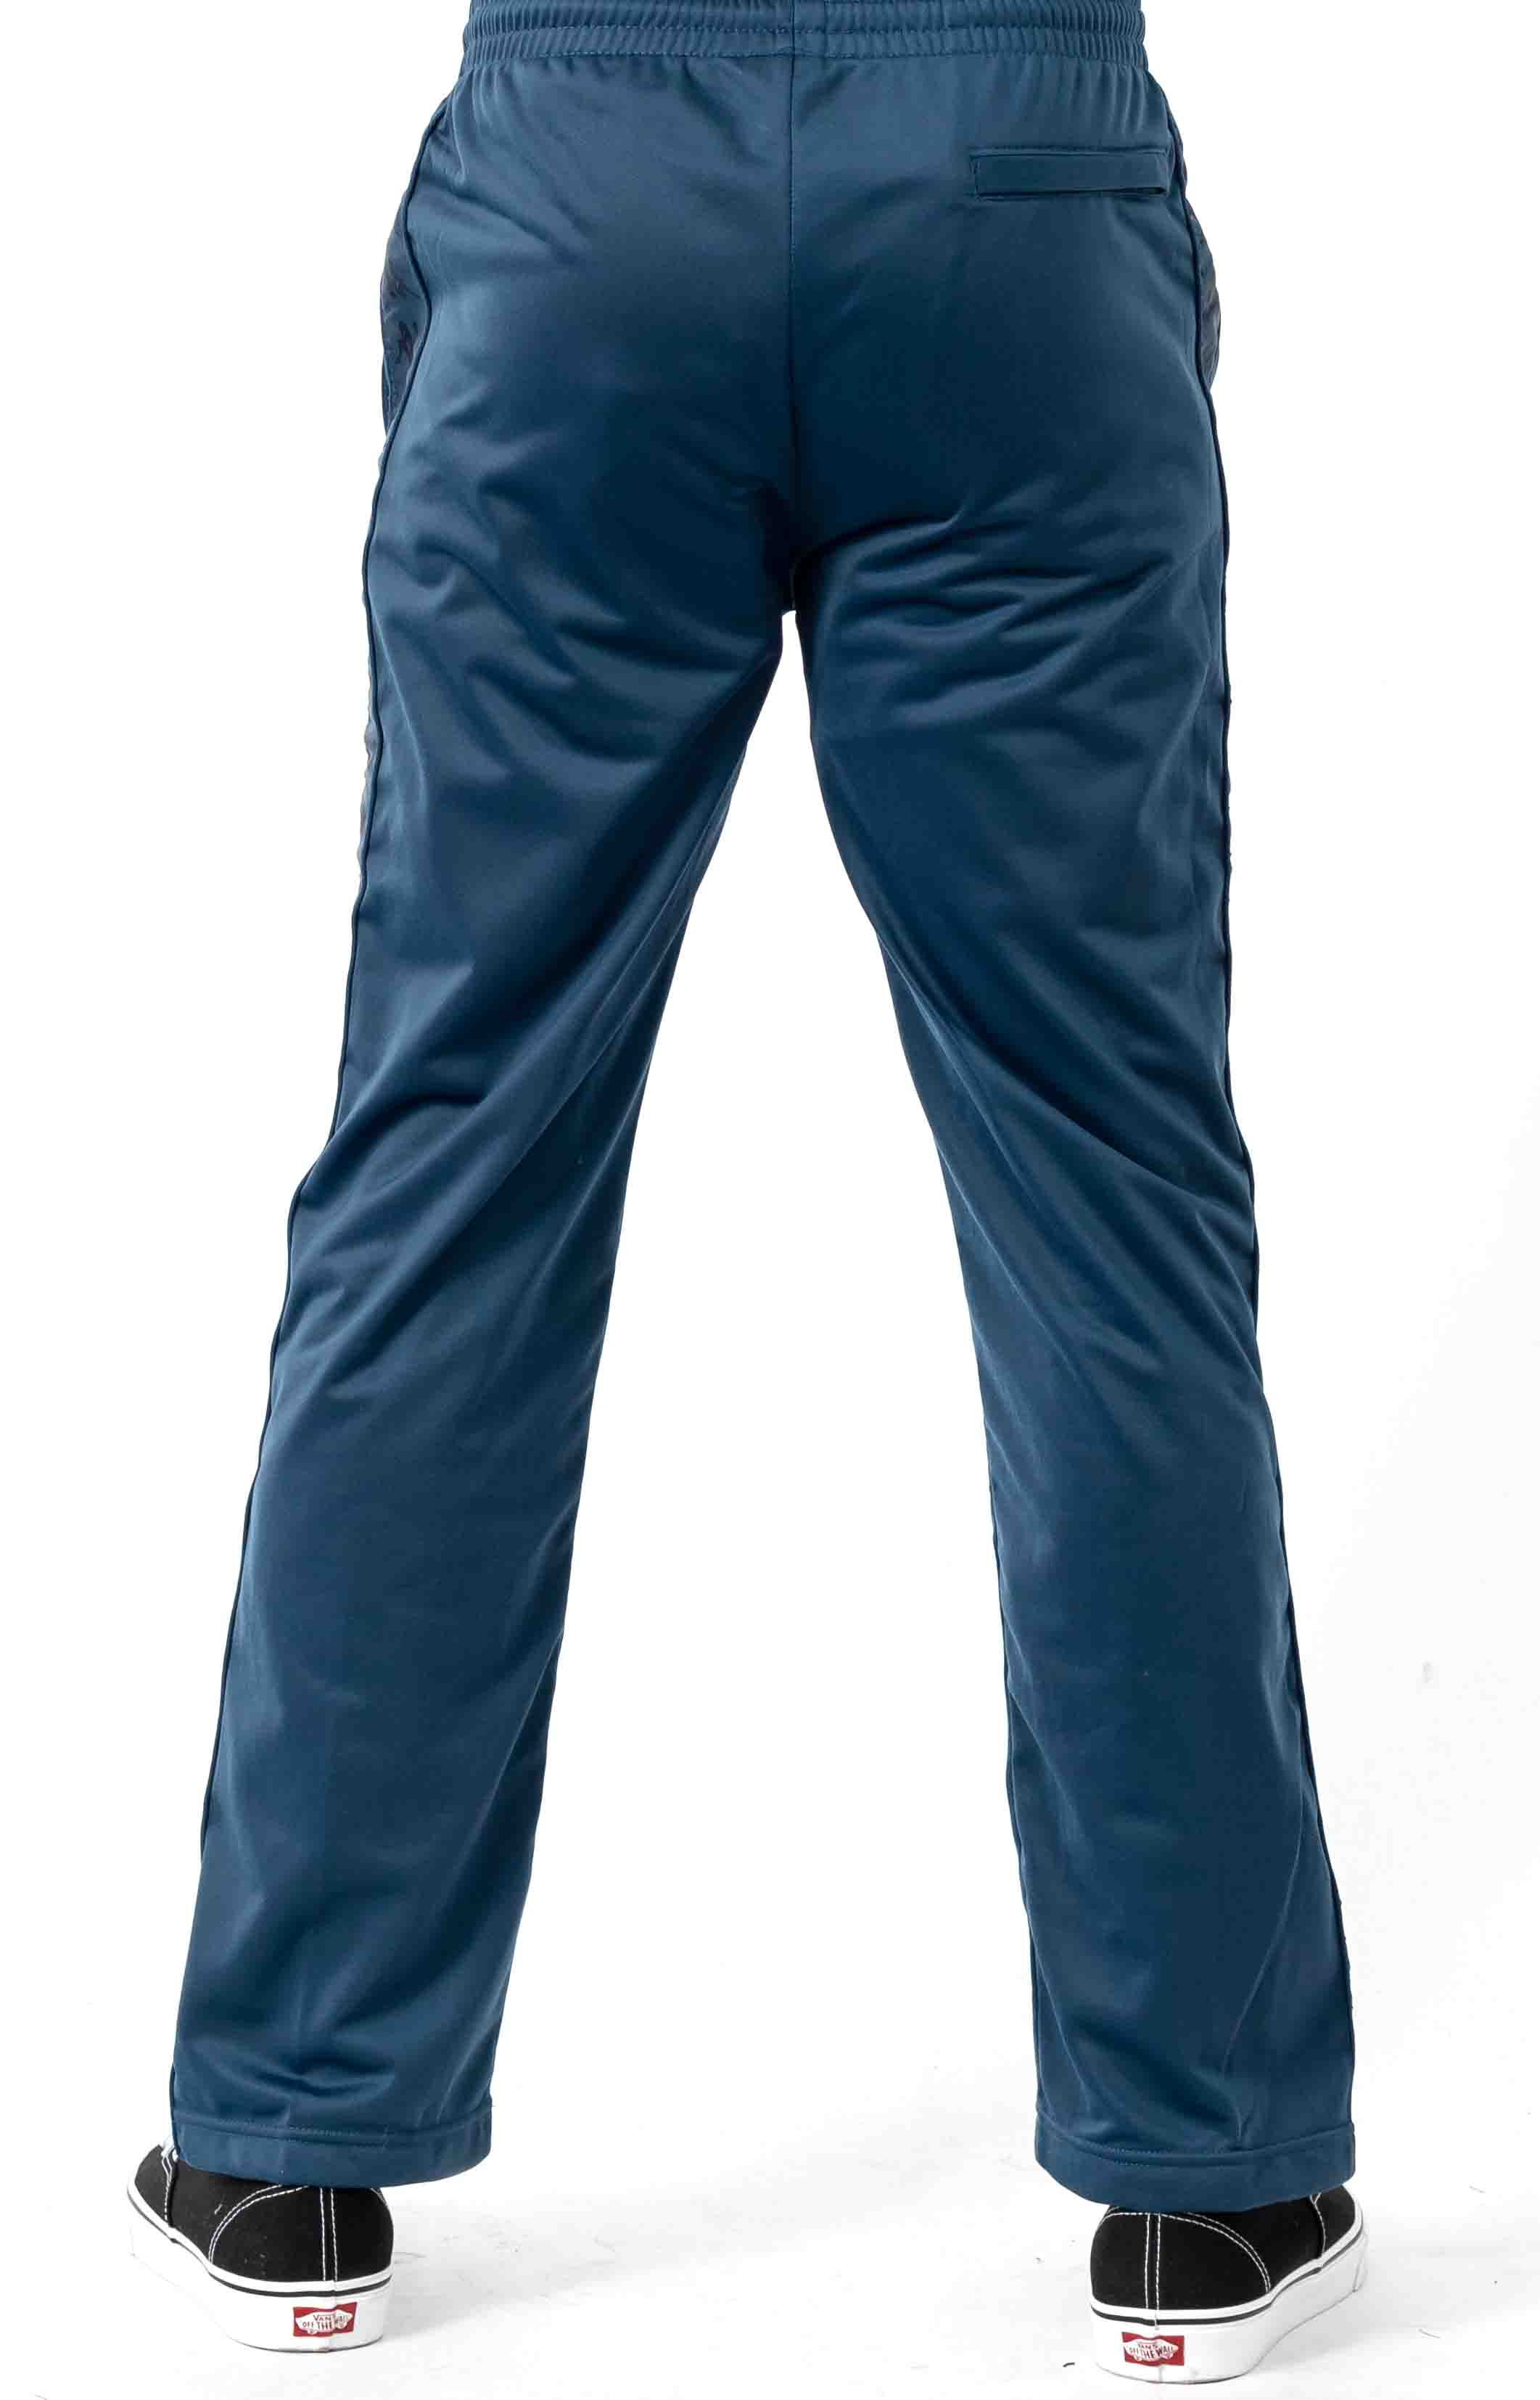 222 Banda Astoriazz Trackpant - Blue/White 3